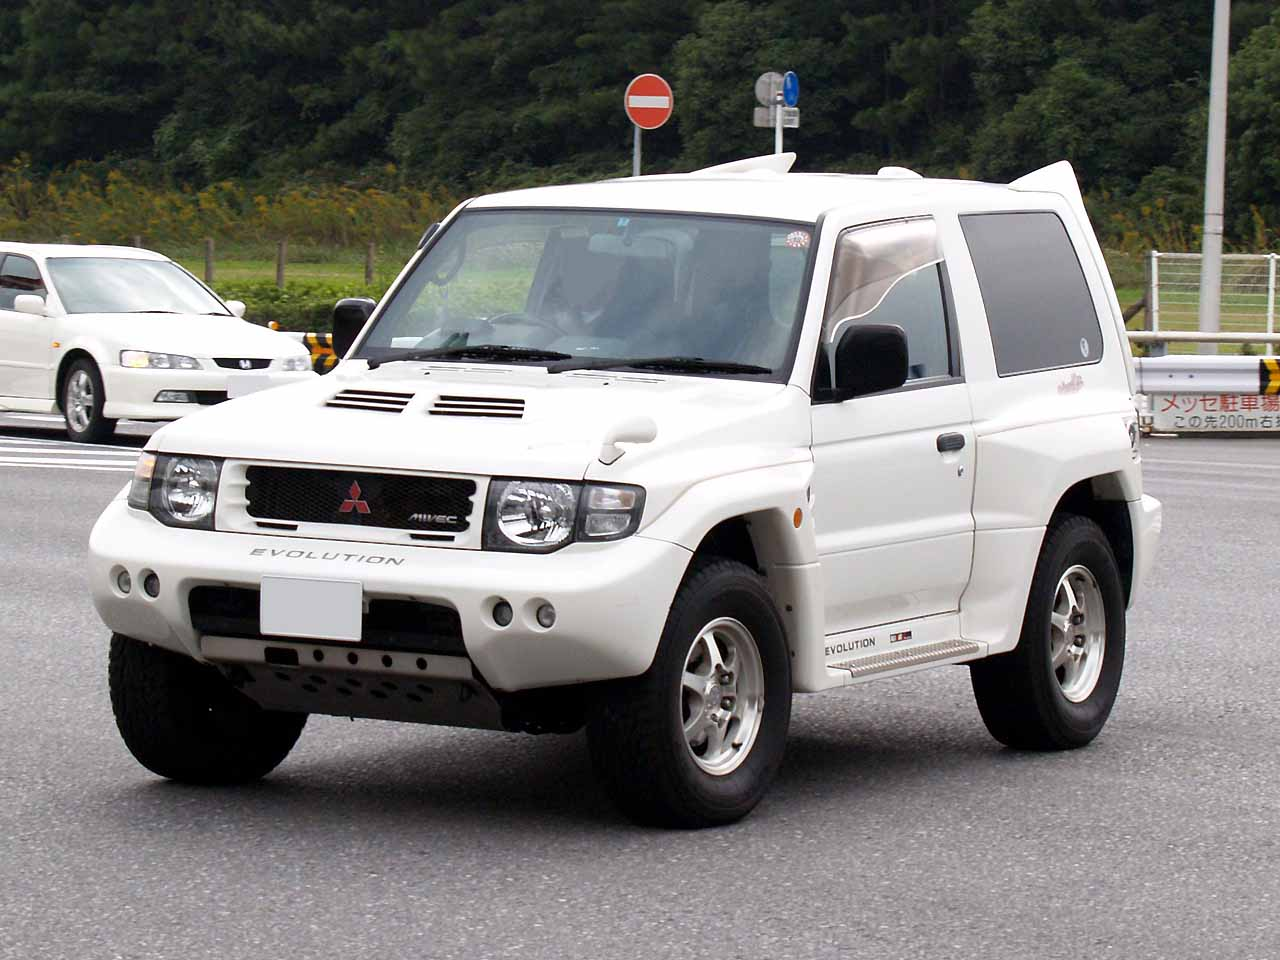 Mitsubishi Pajero Mini I 1994 - 1998 SUV 3 door #3